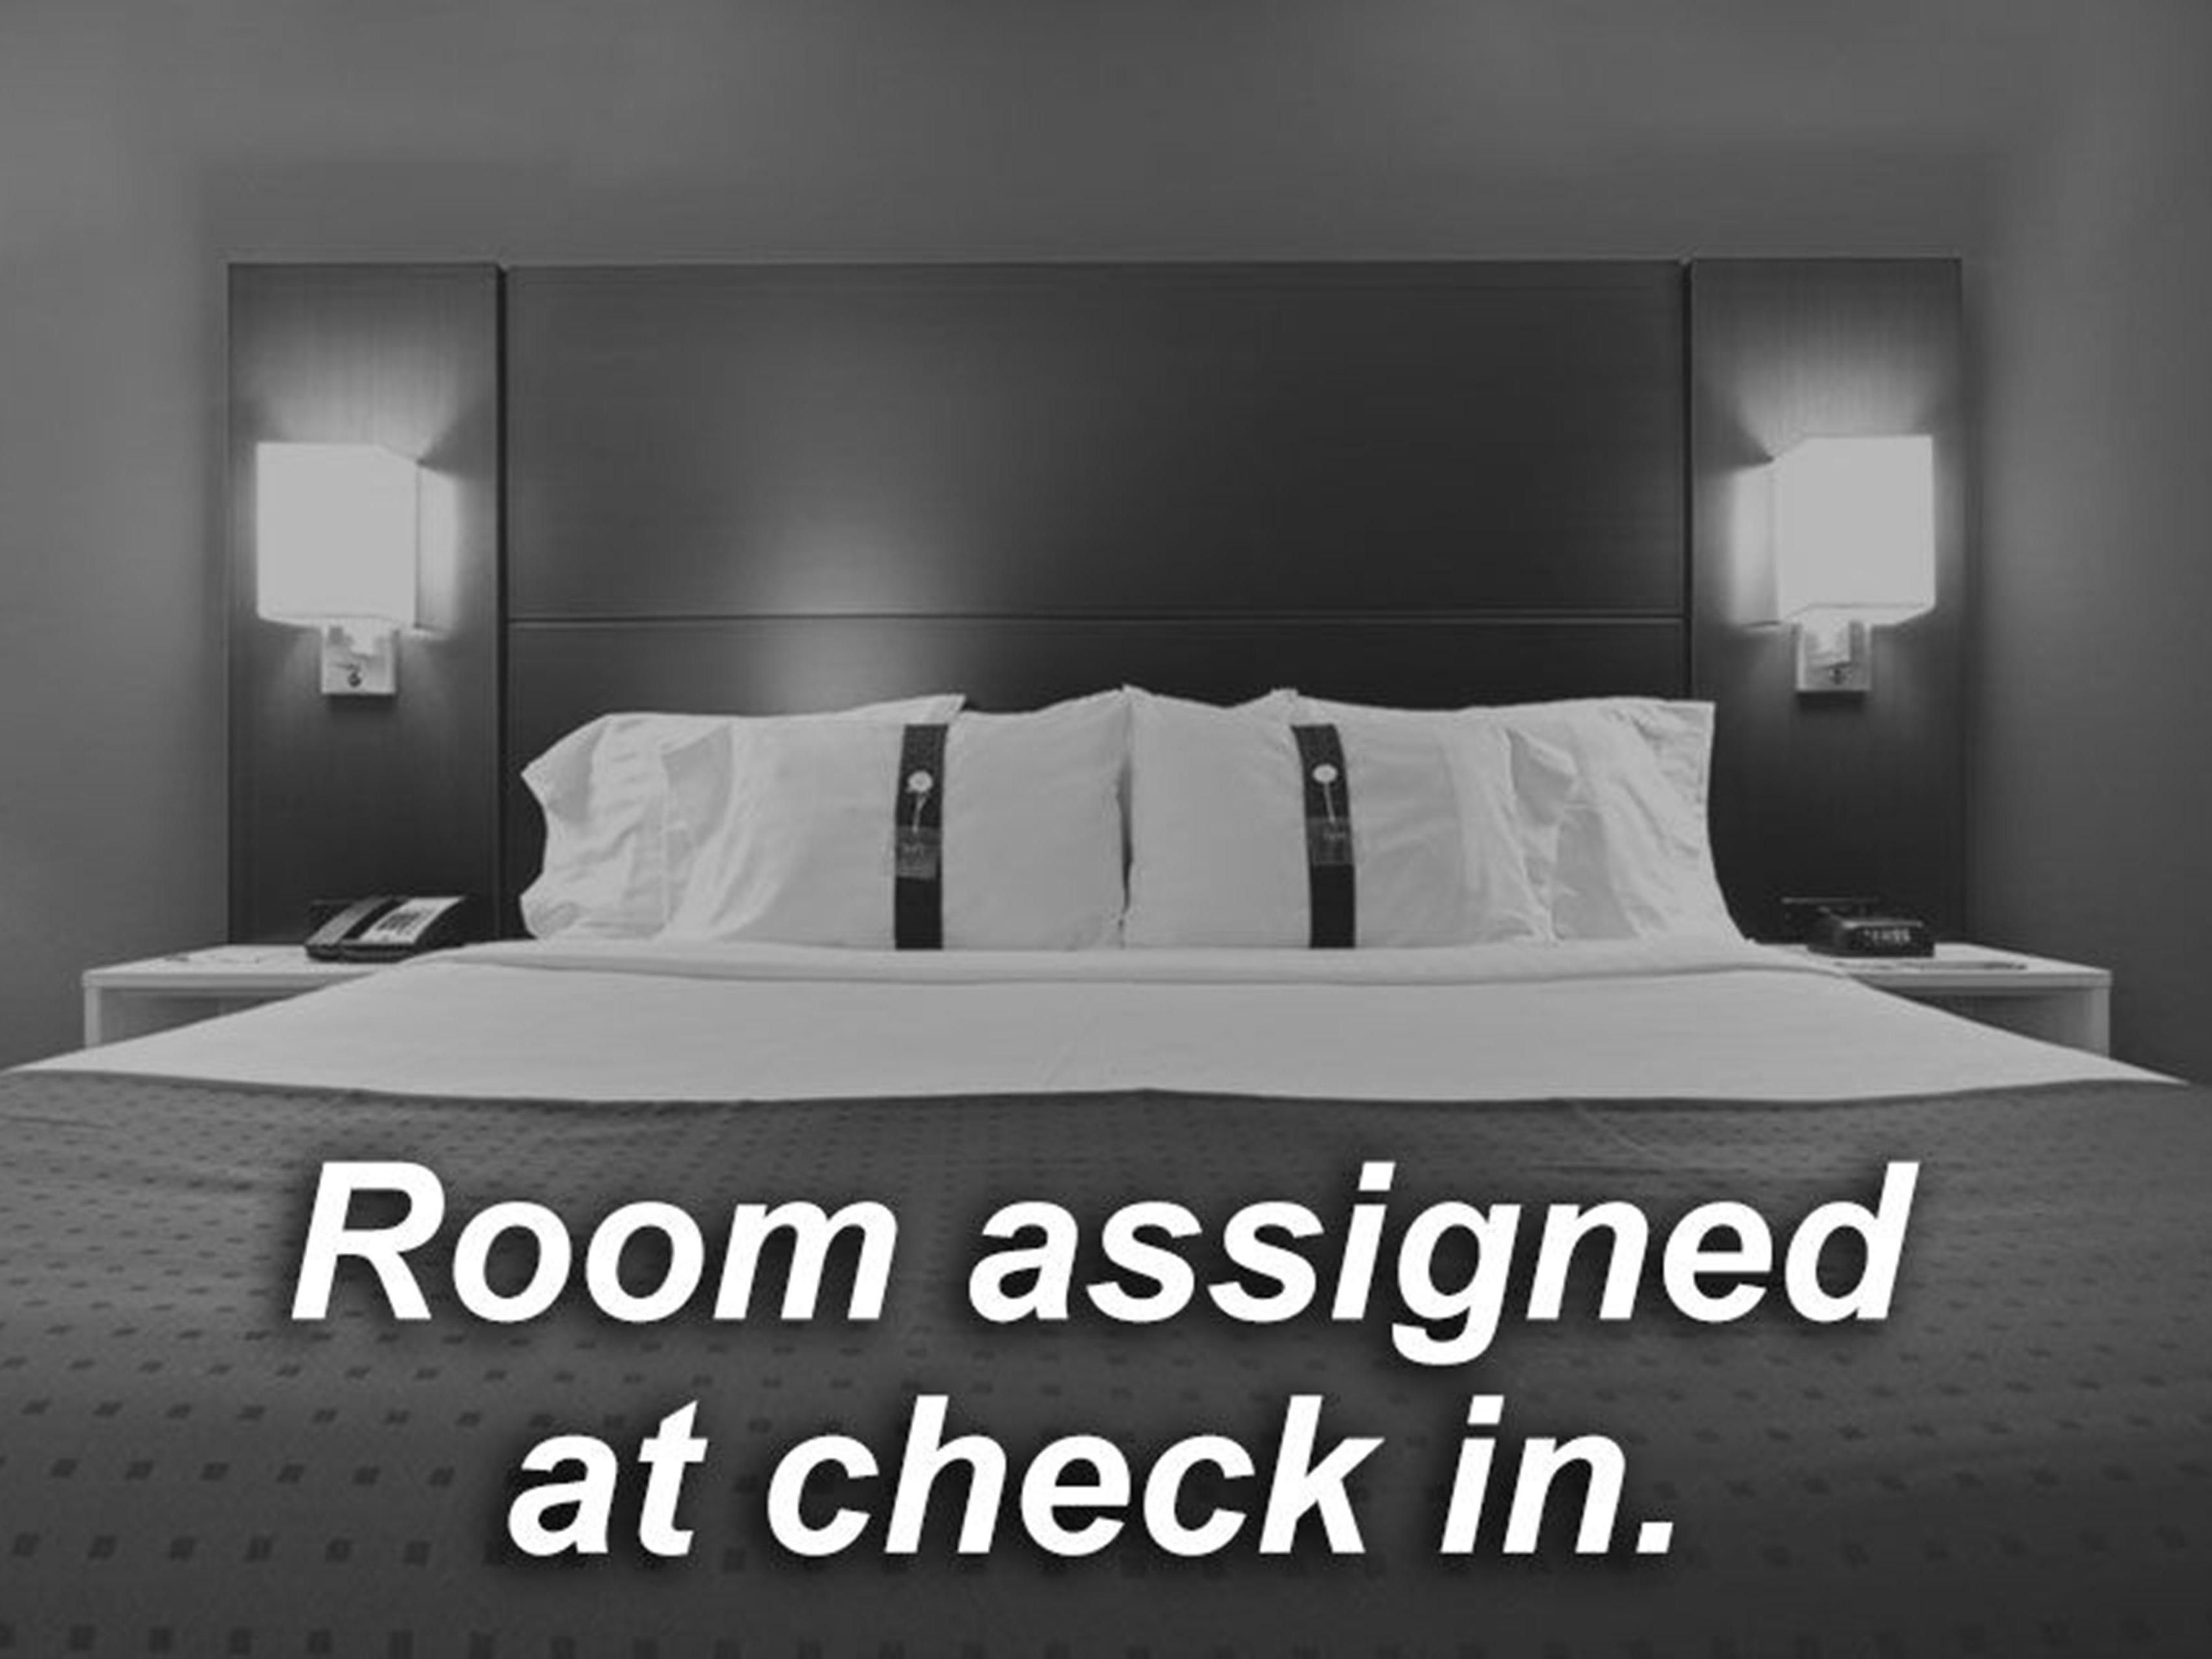 Guest Room Assigned at Check In